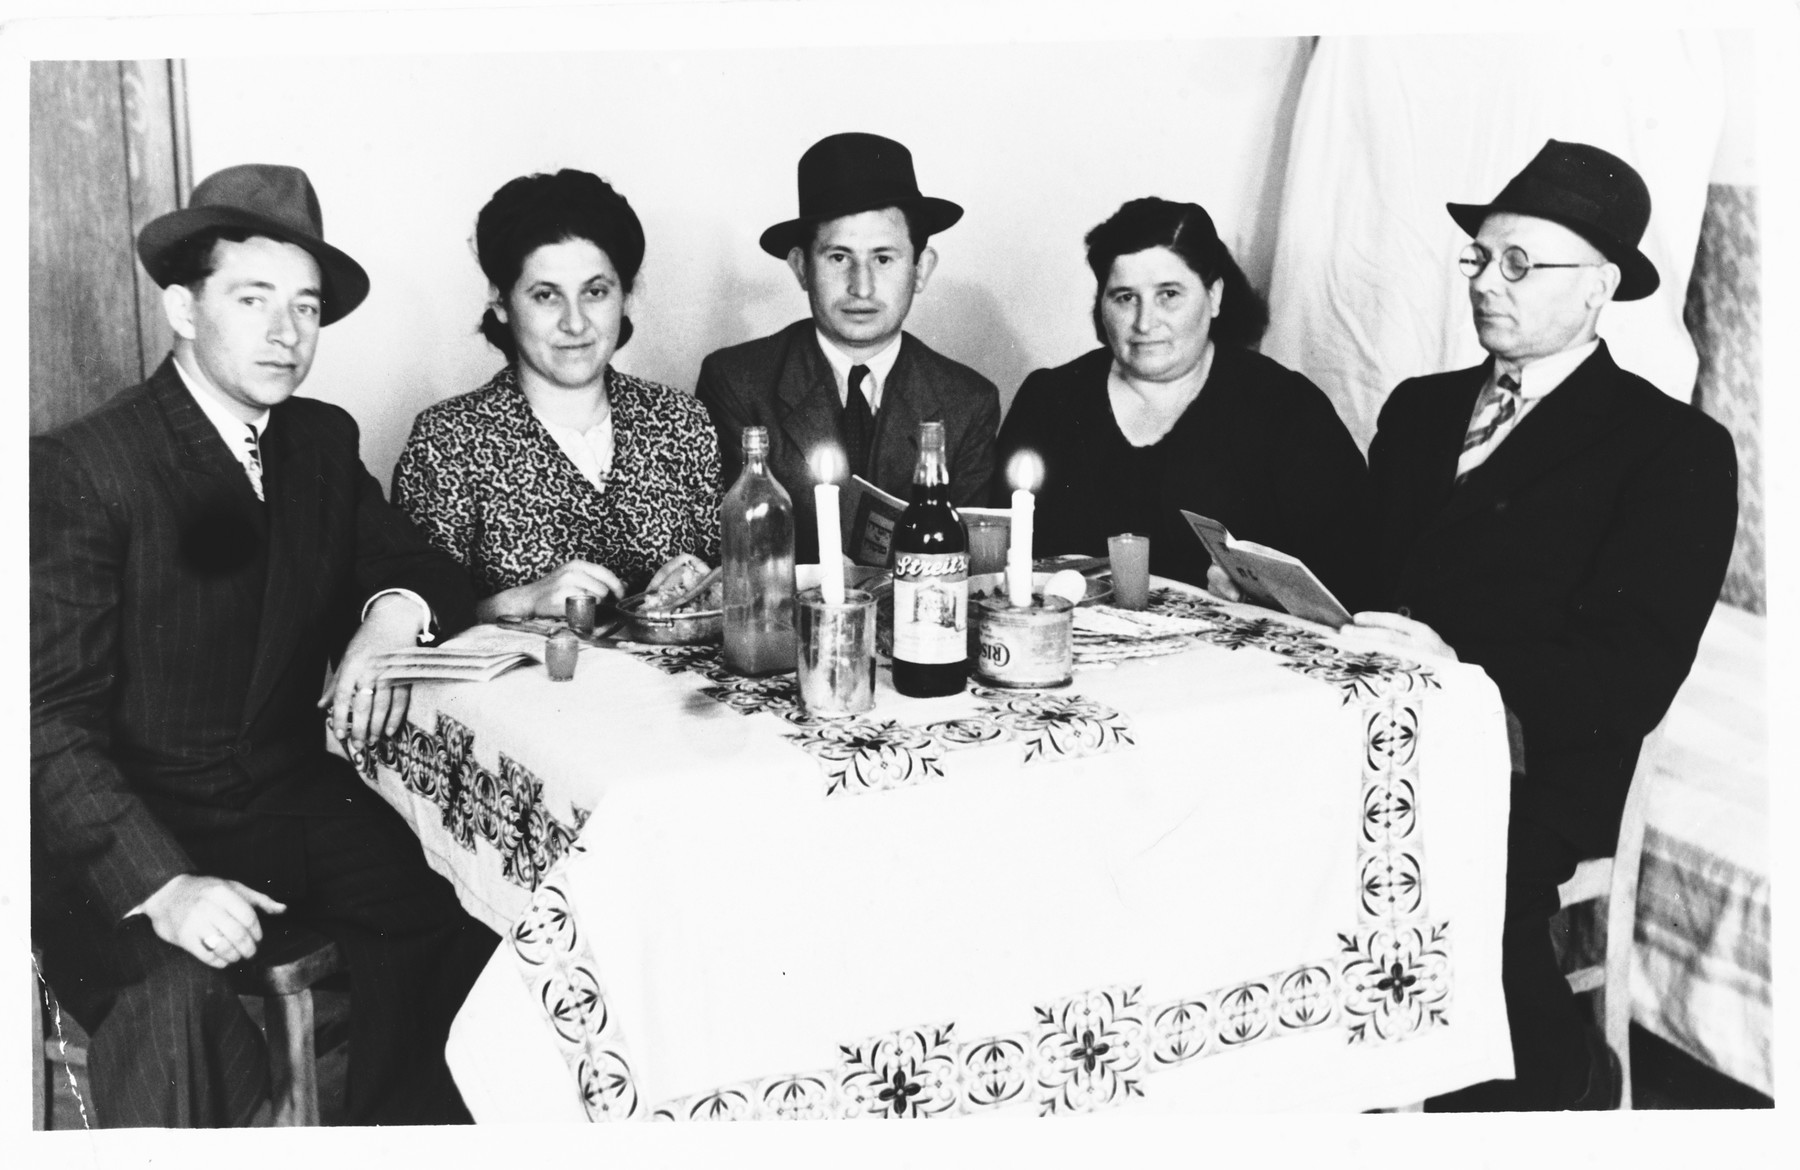 Jewish DPs from Rokitno, Poland are gathered around a Sabbath table at the Ebelsberg displaced persons camp near Linz, Austria.  Pictured from left to right are Itzhak Gendelman, Taibel (Greenberg) Werkel, Yentel Greenberg and Srolik Greenberg.